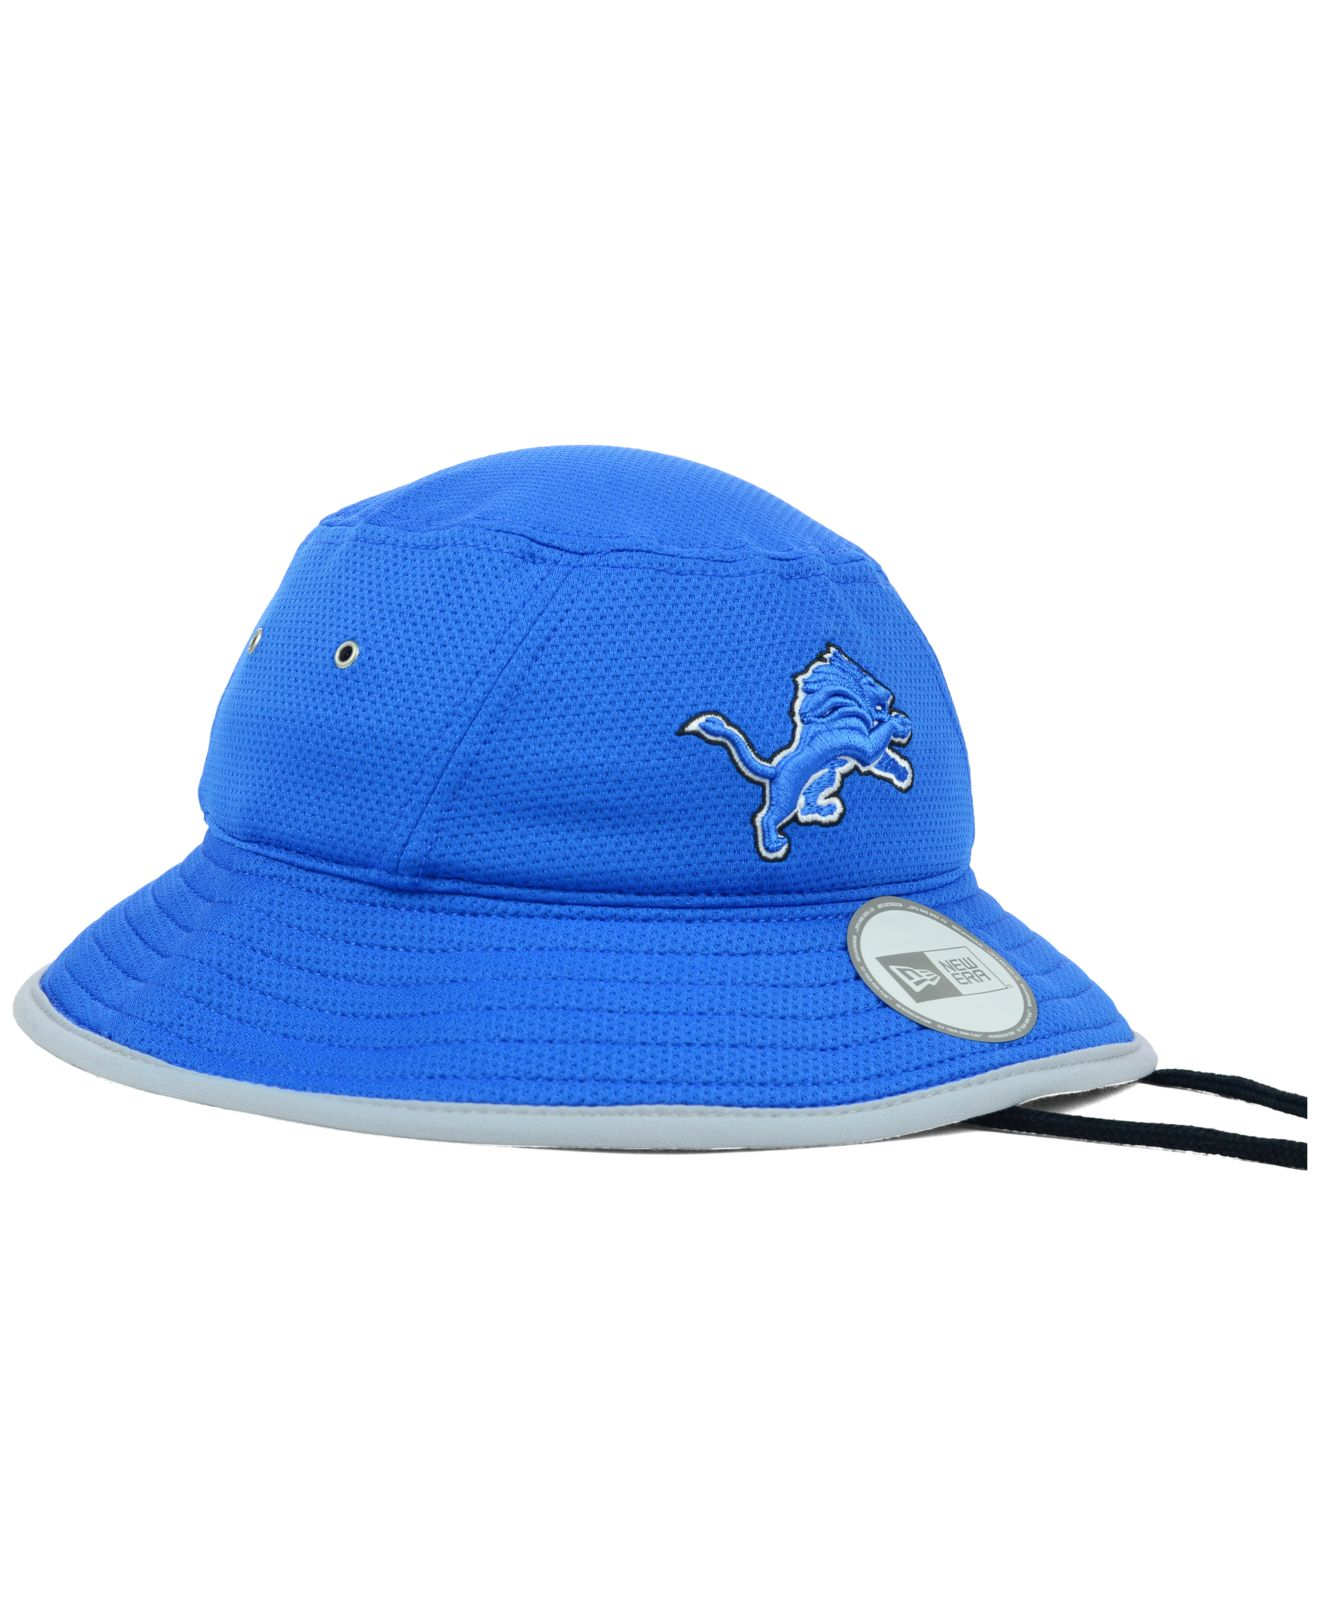 Lyst - KTZ Detroit Lions Tc Training Bucket Hat in Blue for Men 88e68347e